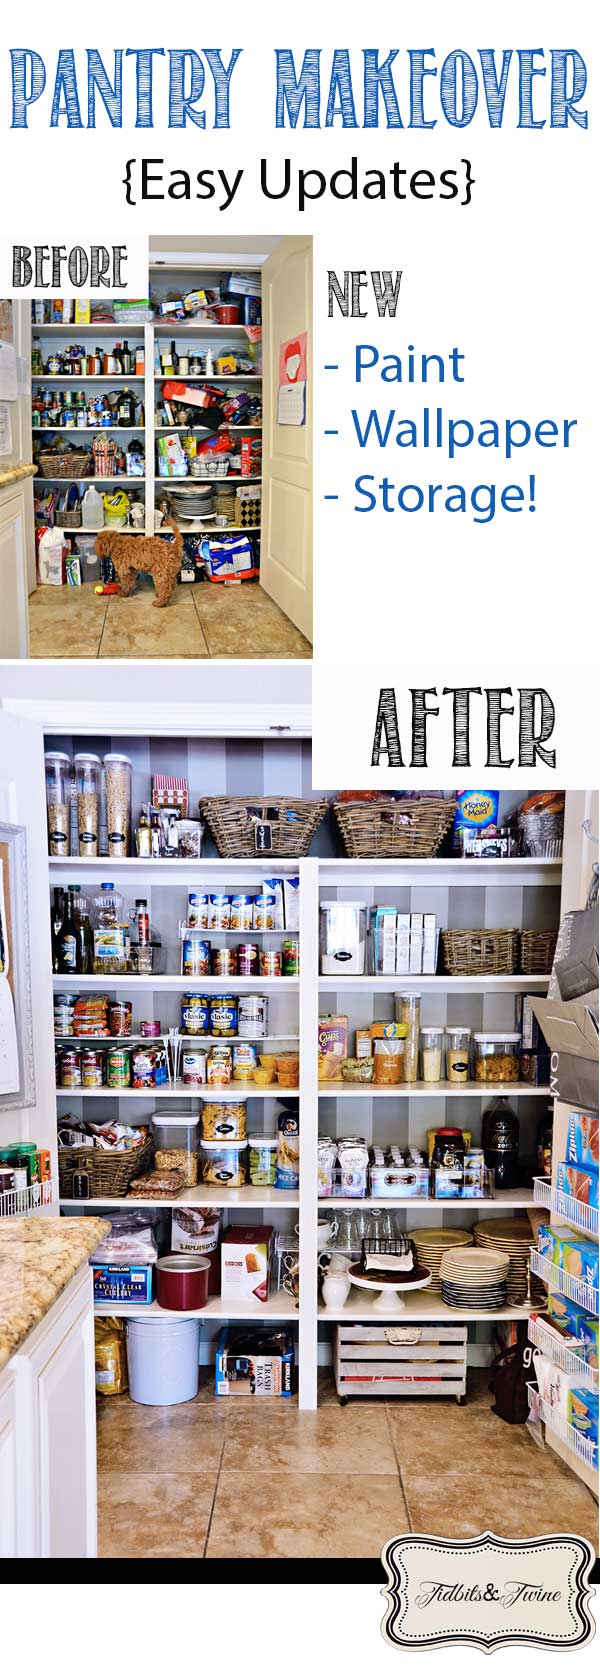 TIDBITS&TWINE Pantry Makeover Before and After